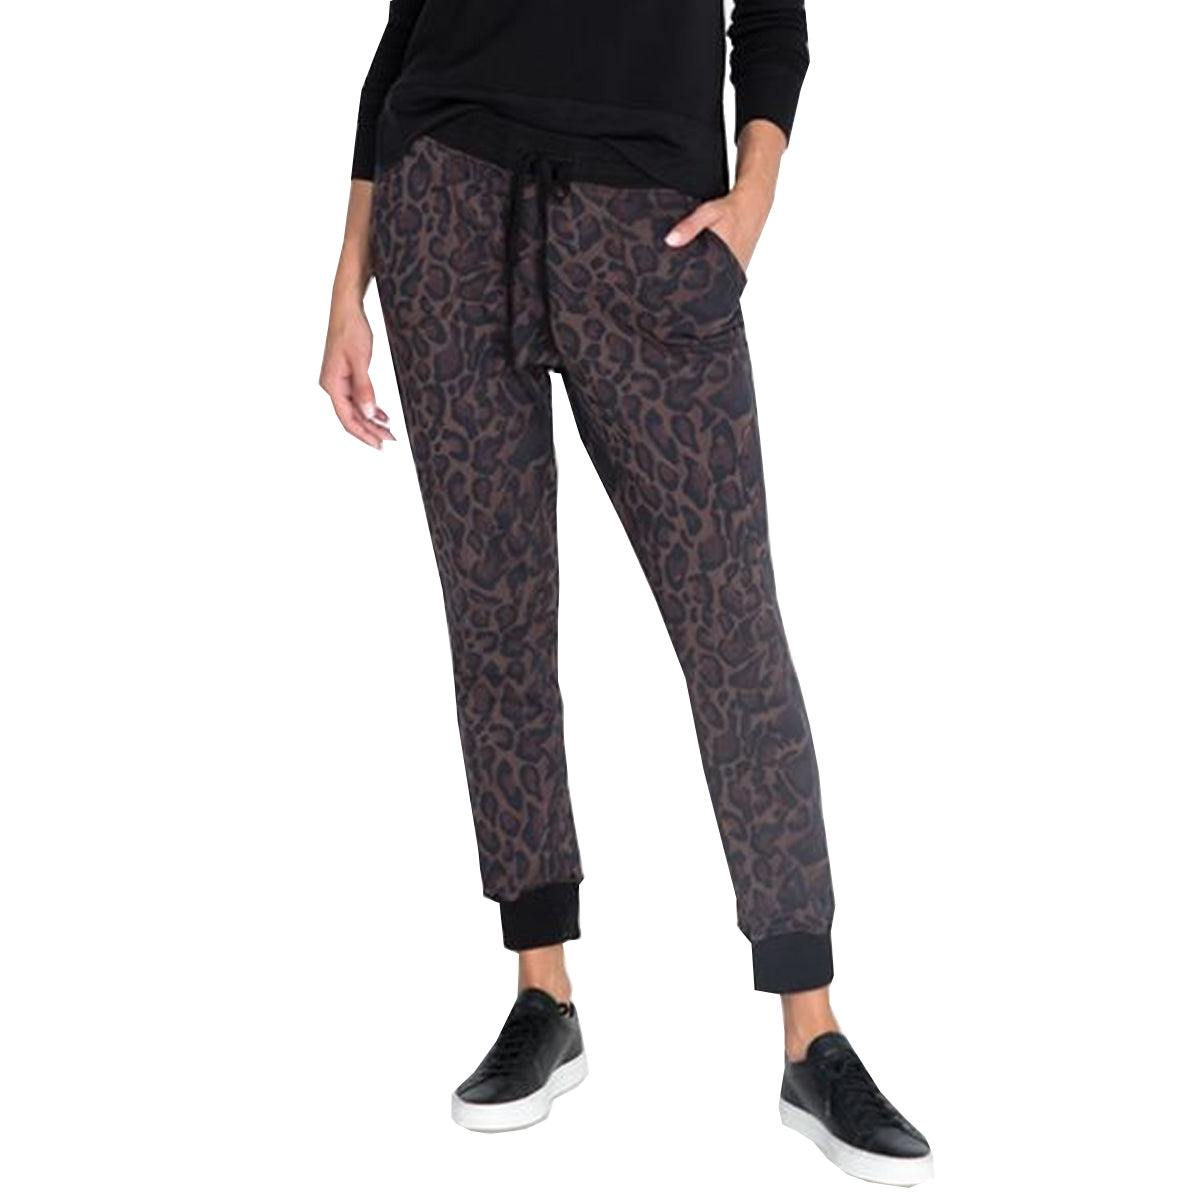 Johnny Was French Terry Jogger Pants - Leopard